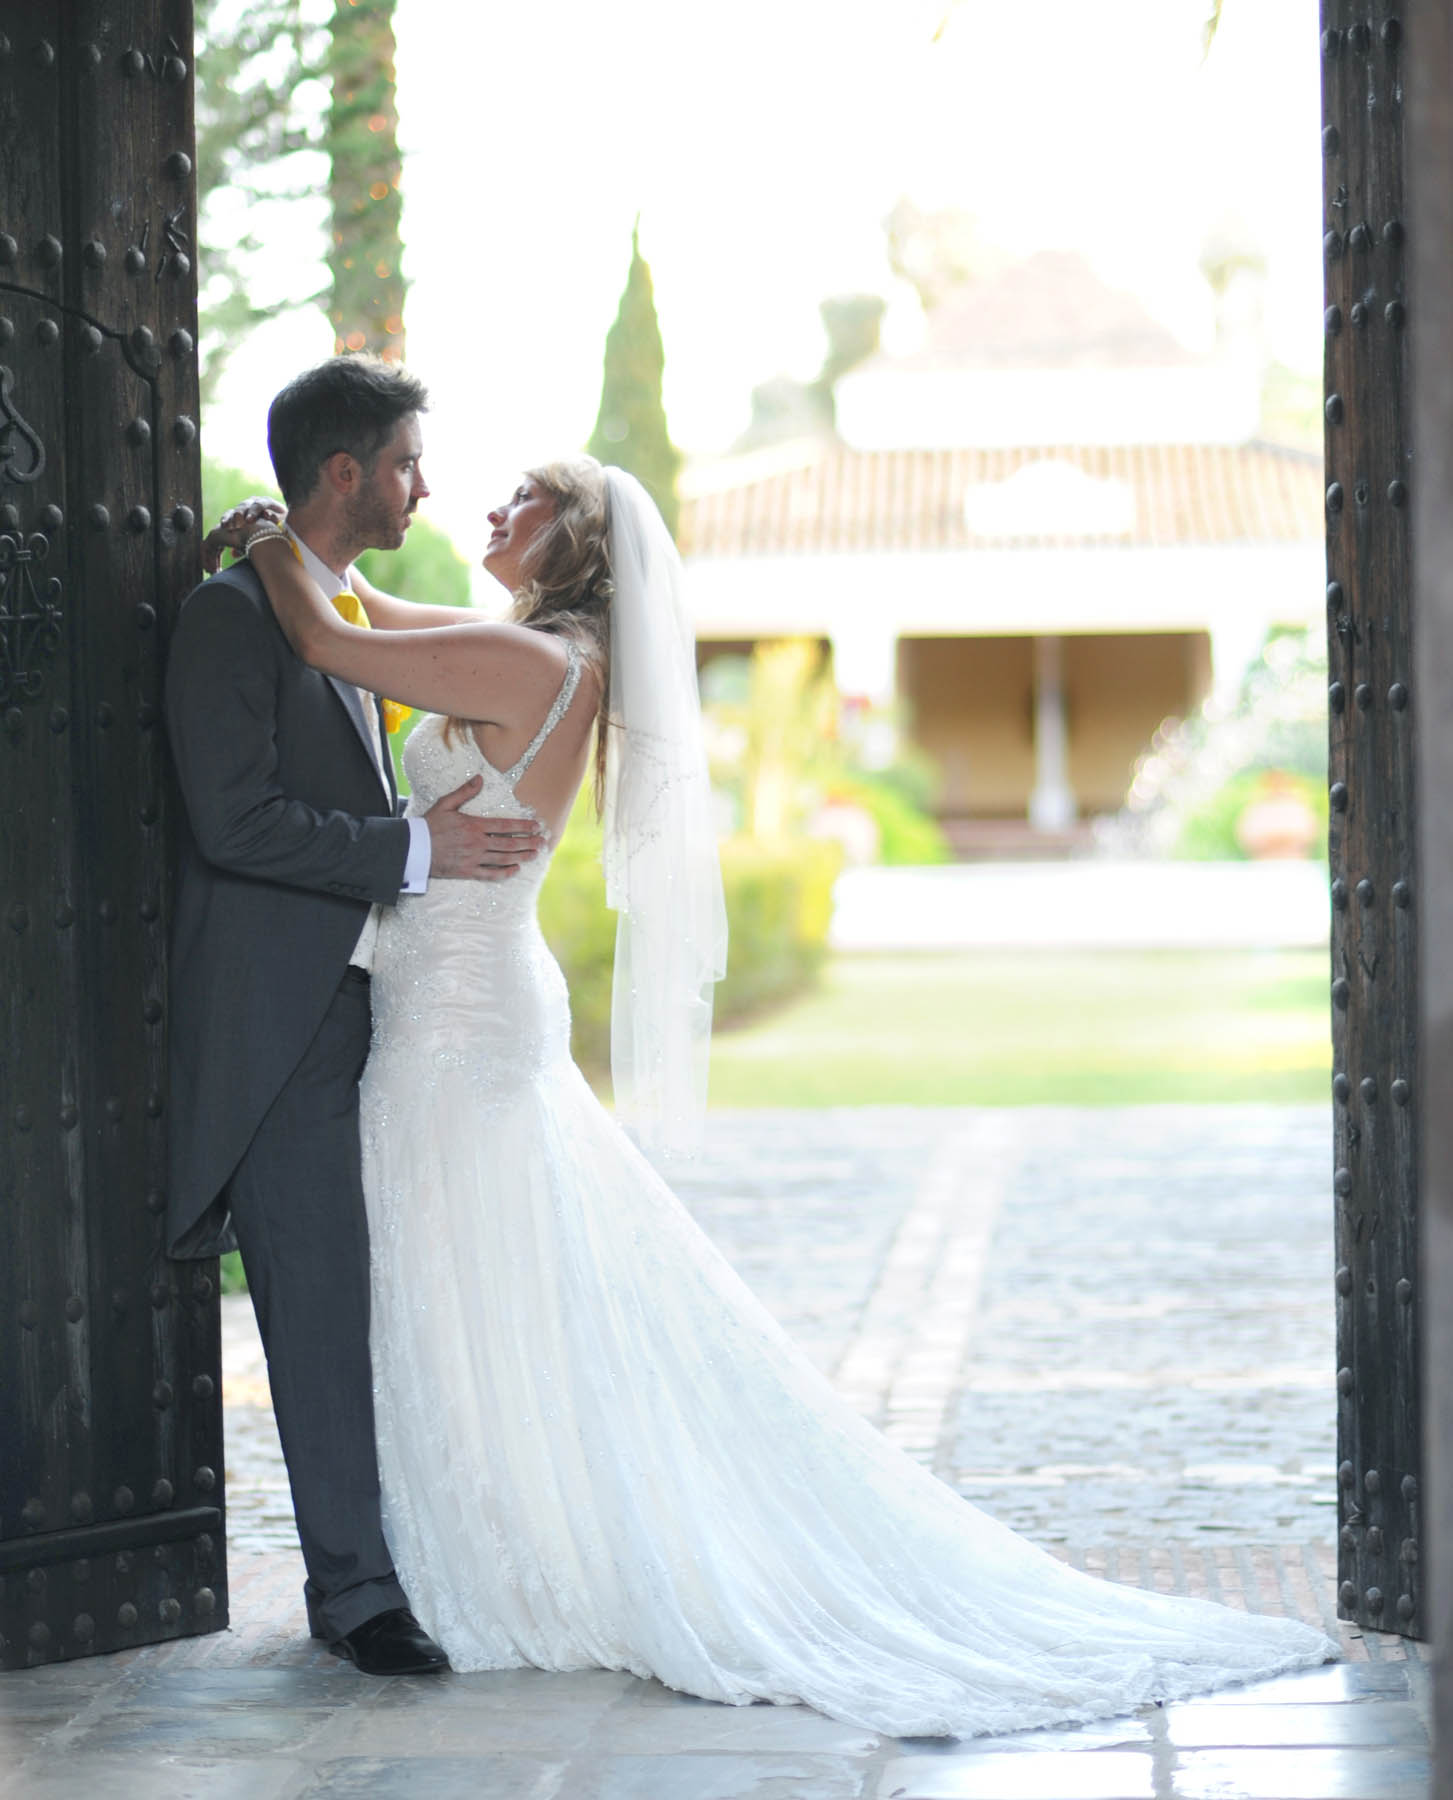 Wedding photographer Malaga Bodakids